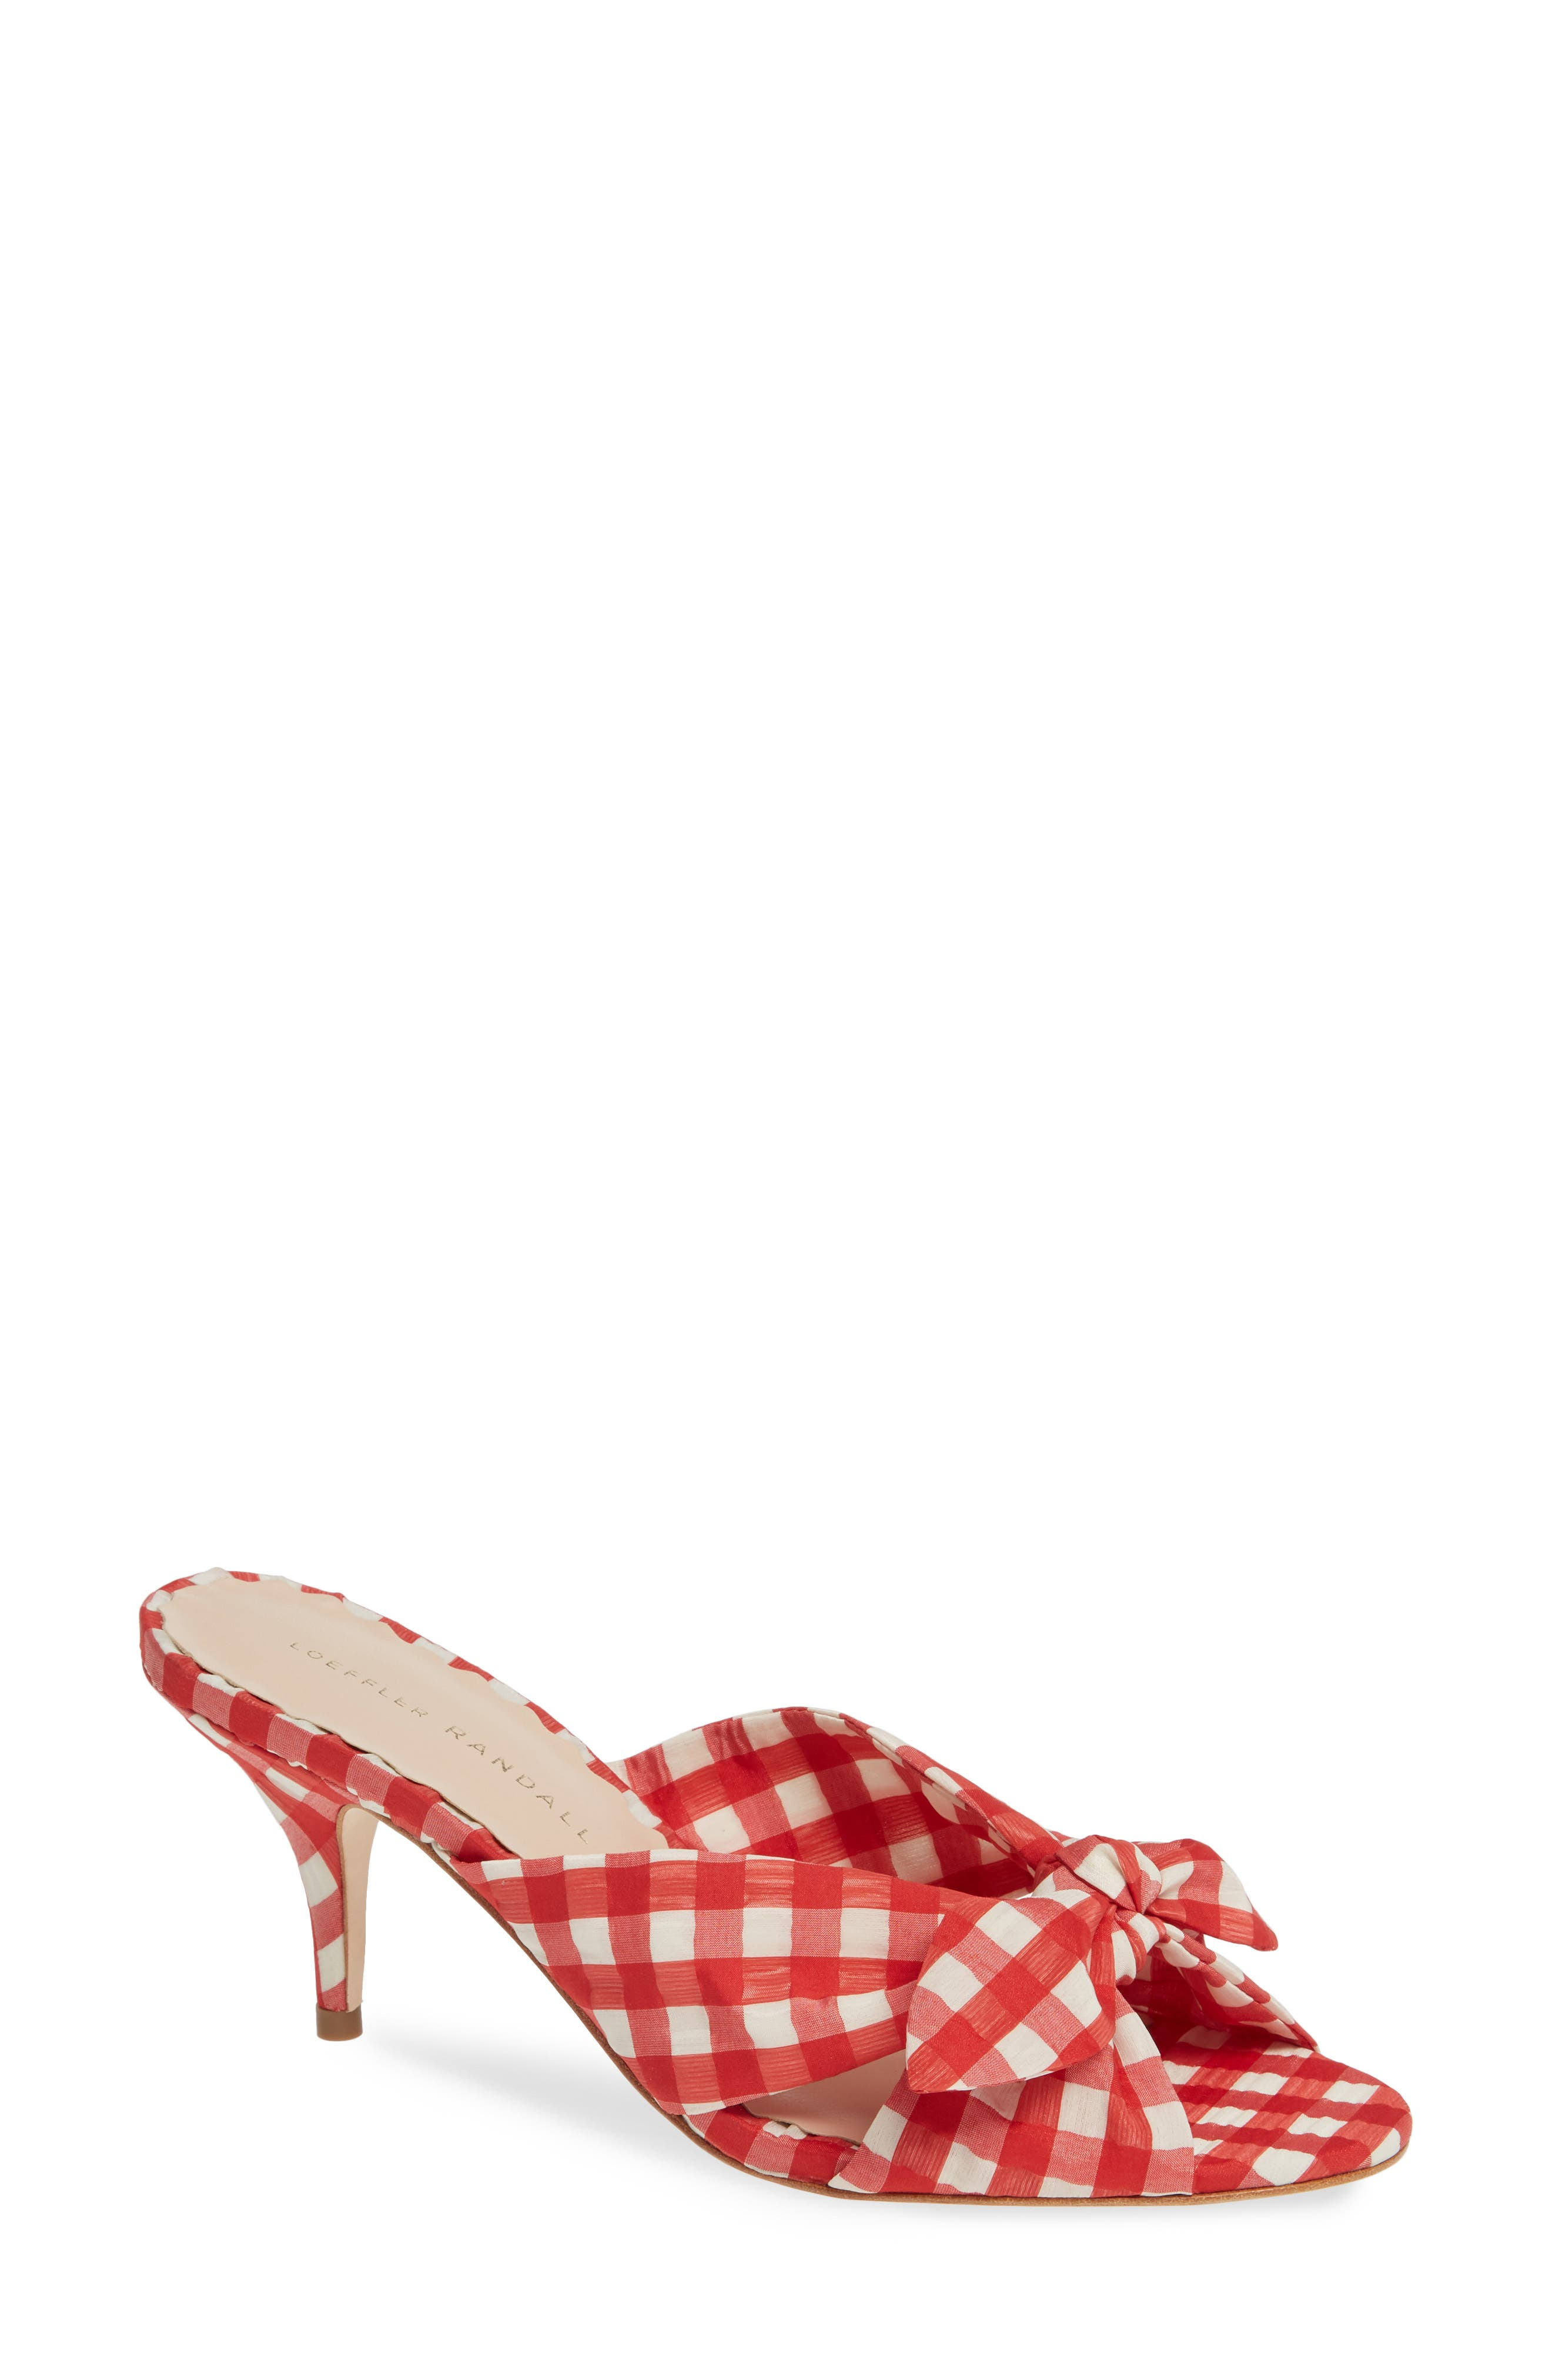 LOEFFLER RANDALL Luisa Sandal, Main, color, RED